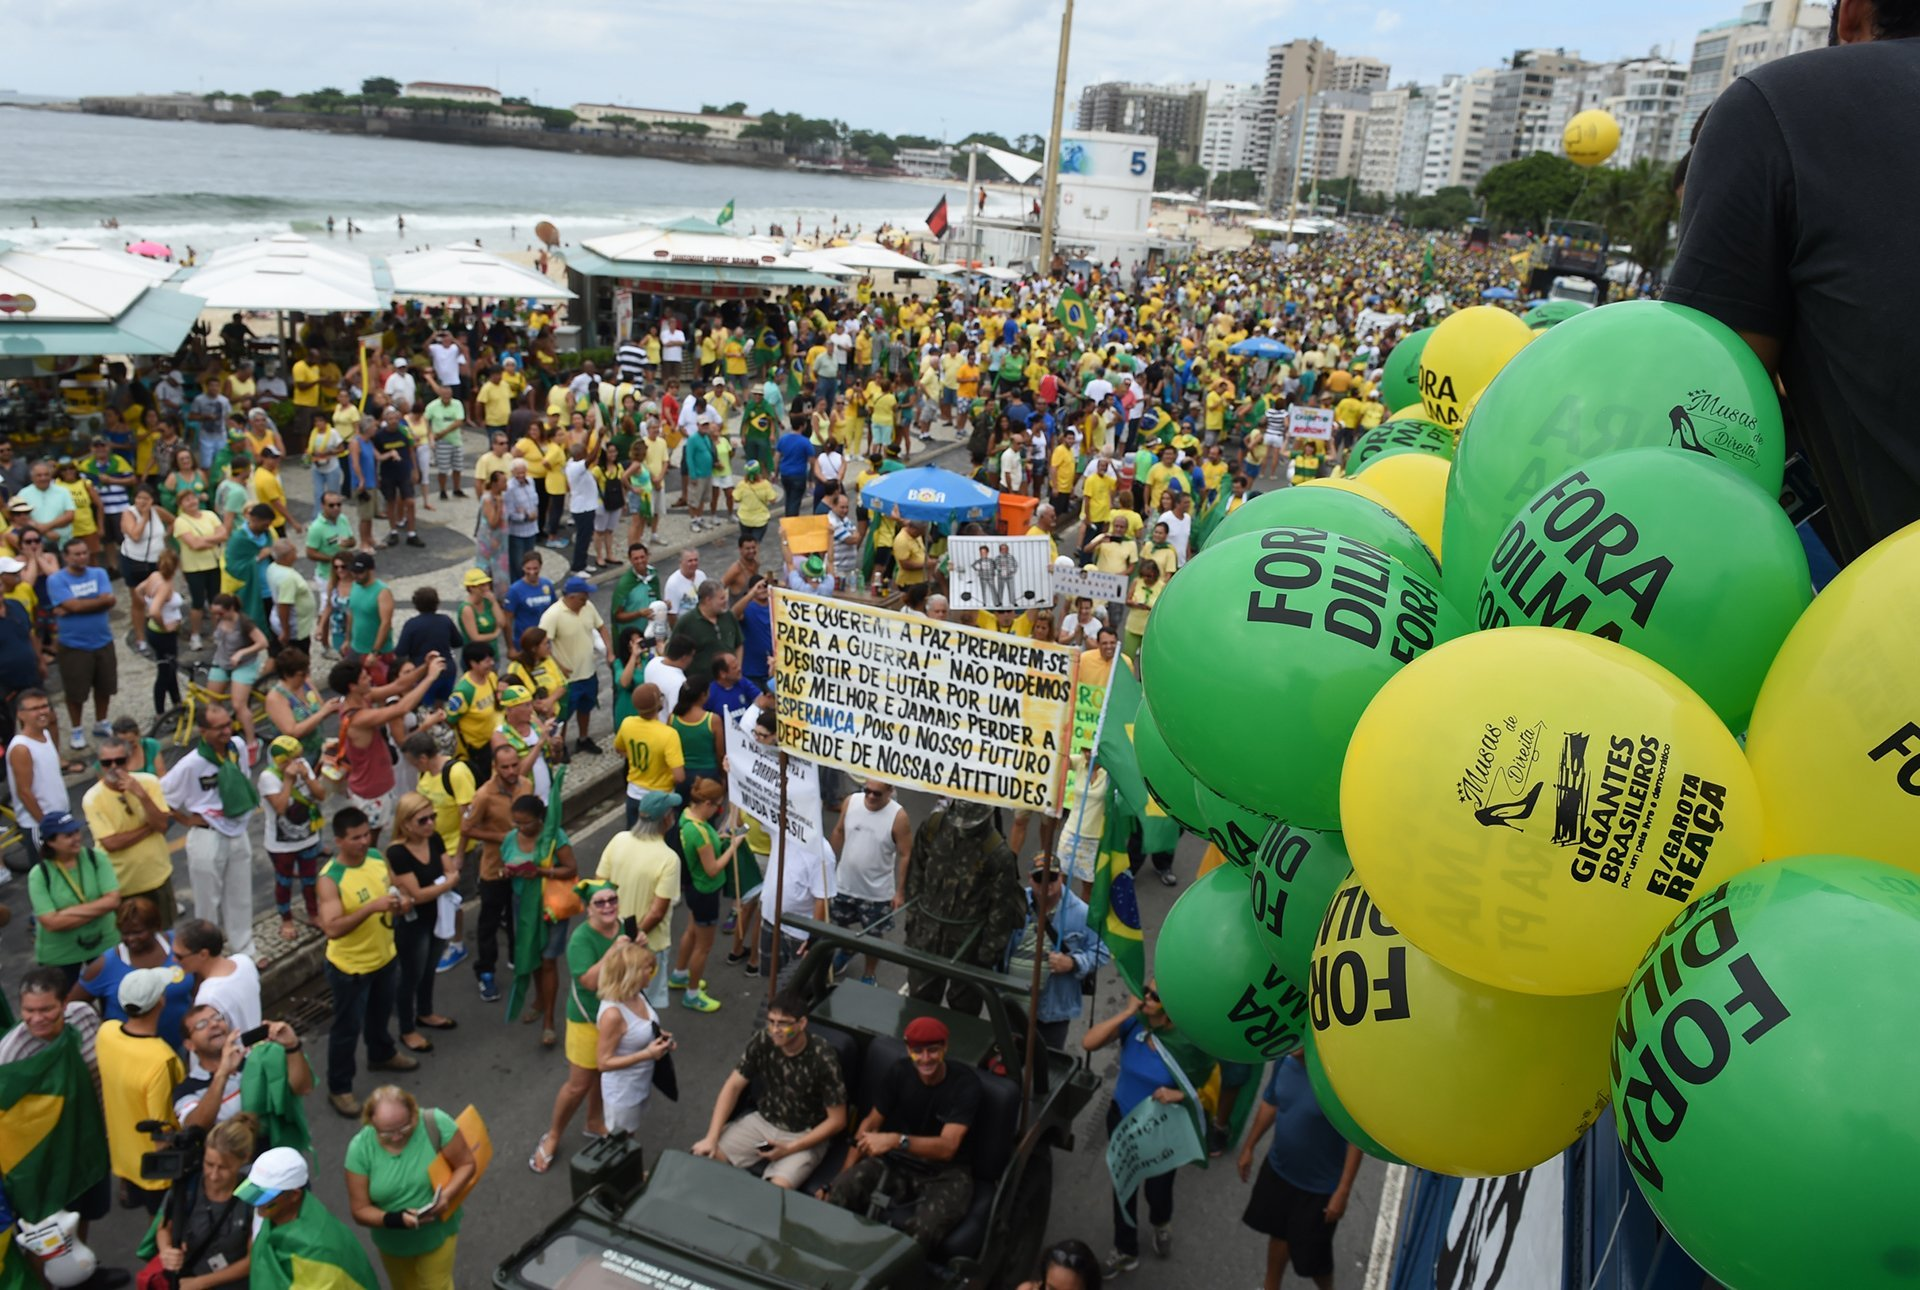 marcha brasil contra lula y dilma rousseff (1)